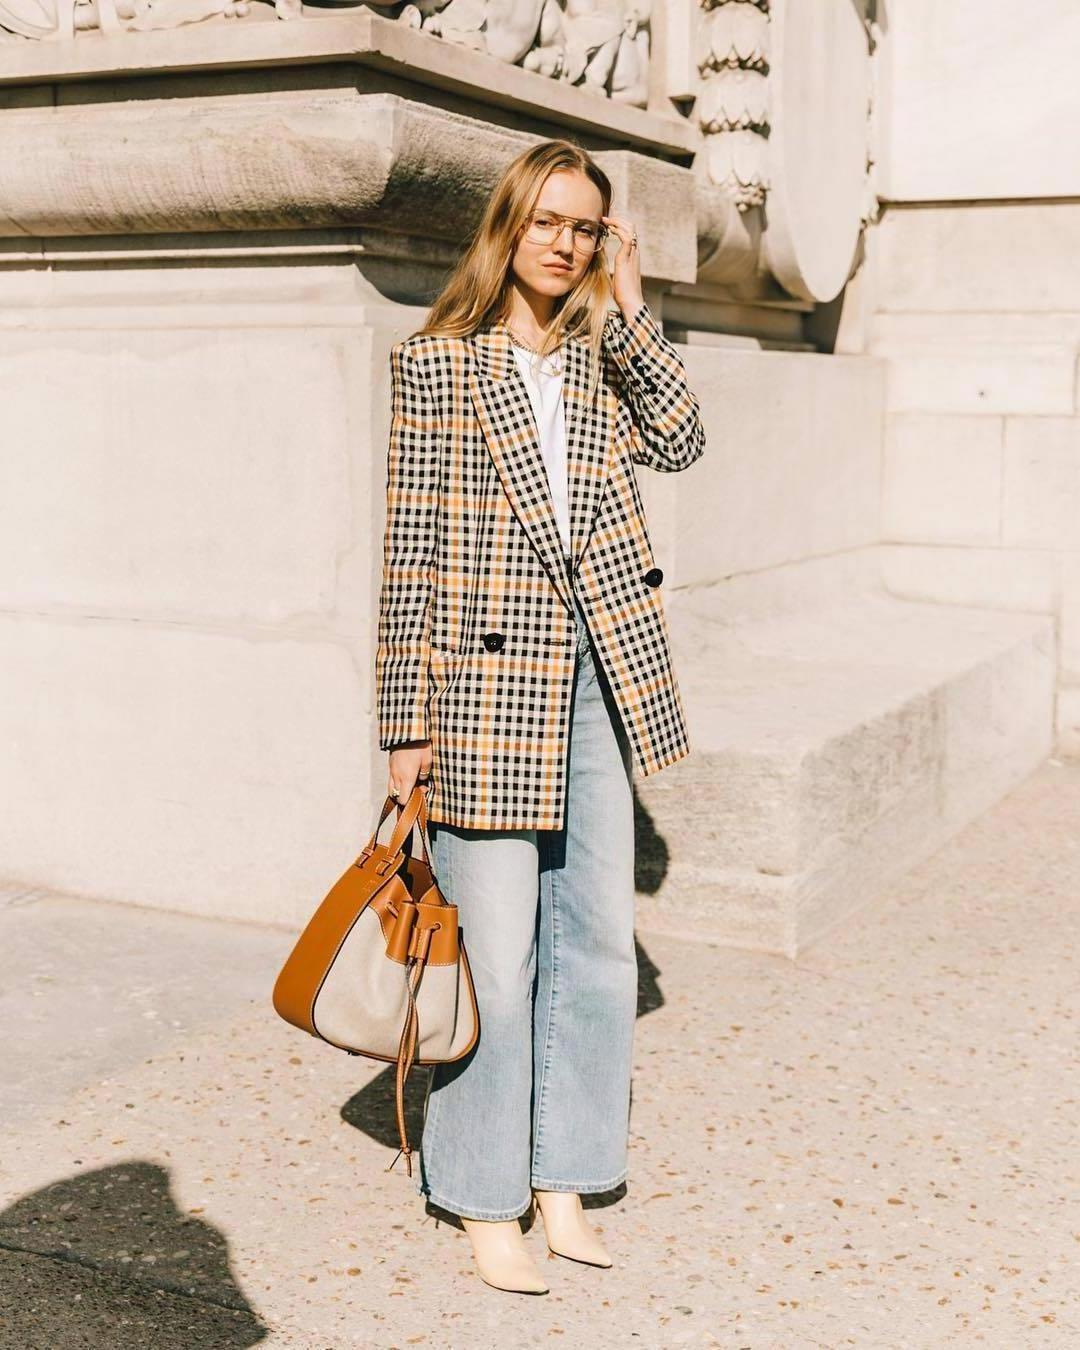 Jeans Denim Jeans High Waisted Jeans Wide Leg Pants Ankle Boots Heel Boots Handbag Plaid Coat Double Breasted White T Shirt Loewe Bag Straight Jeans White Sweater cover image